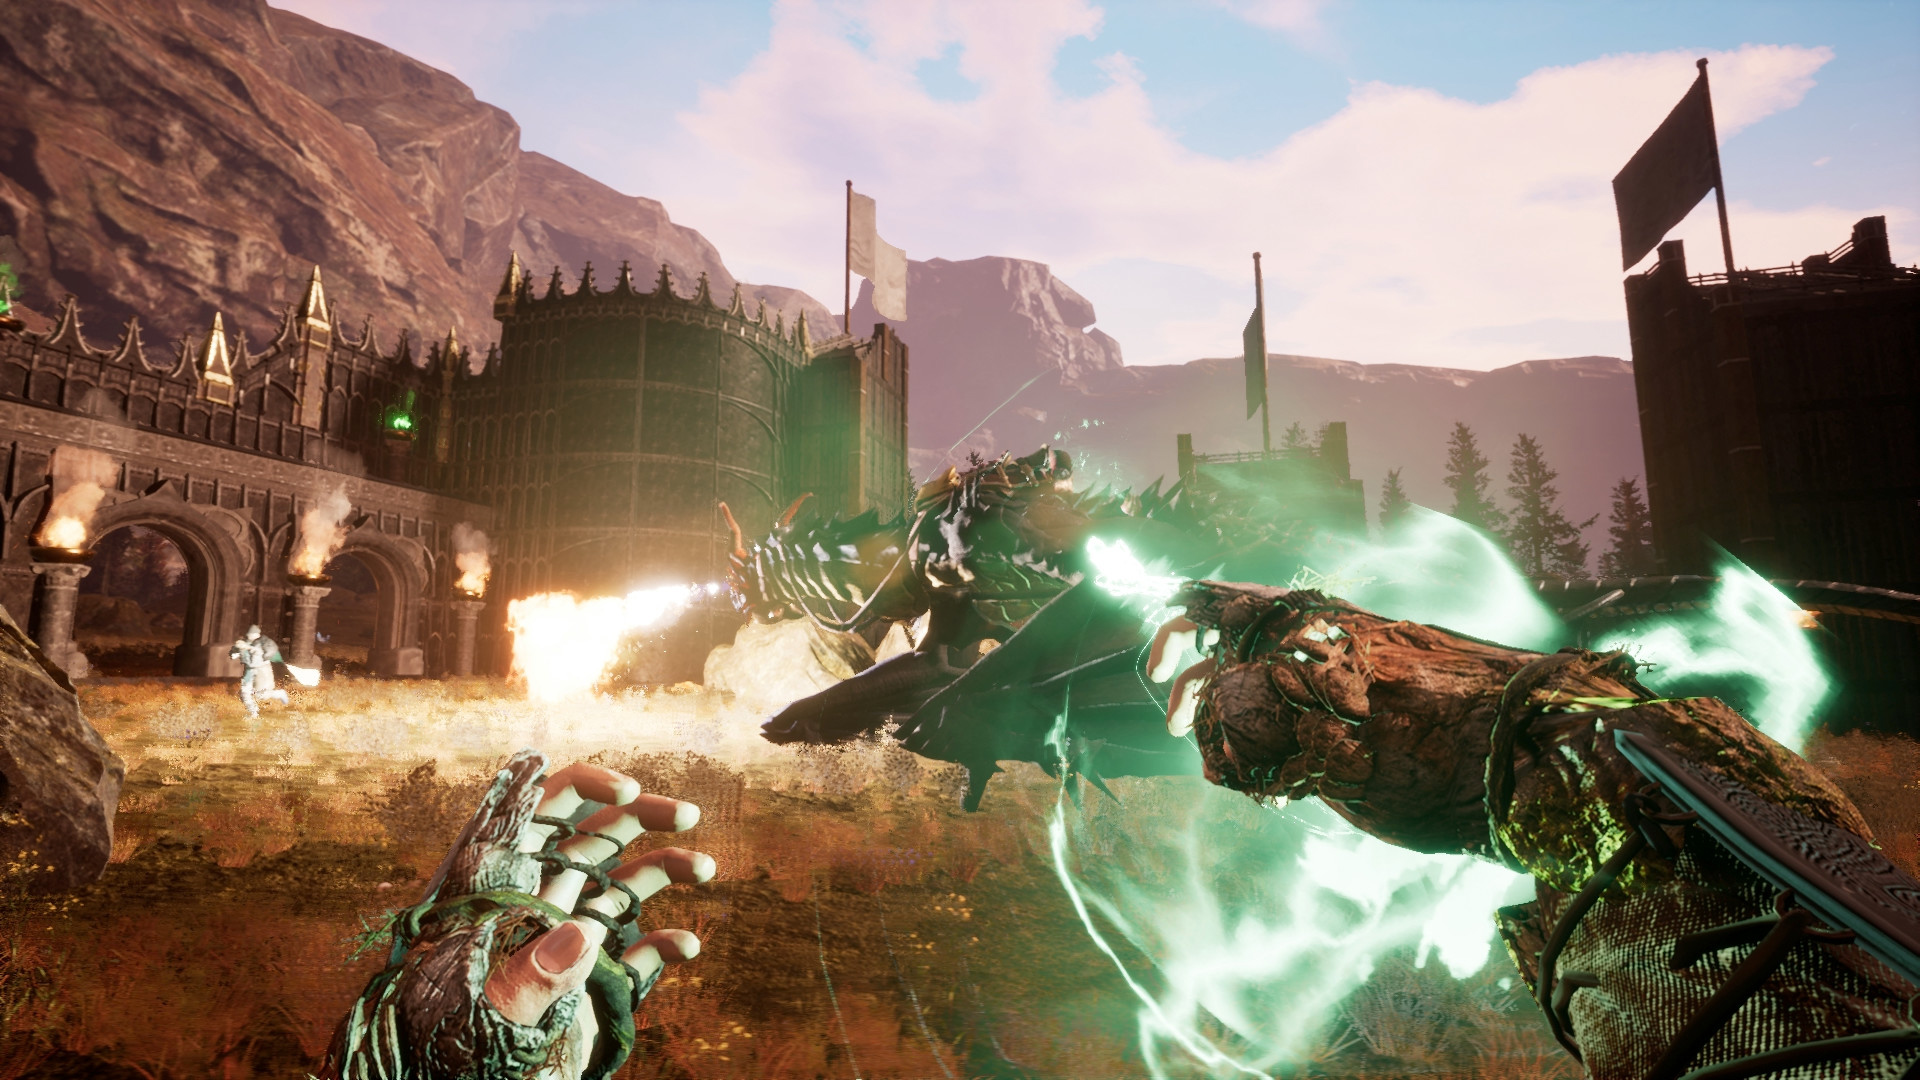 Online sandbox RPG Citadel lets you fly on a broomstick and cast spells with friends screenshot